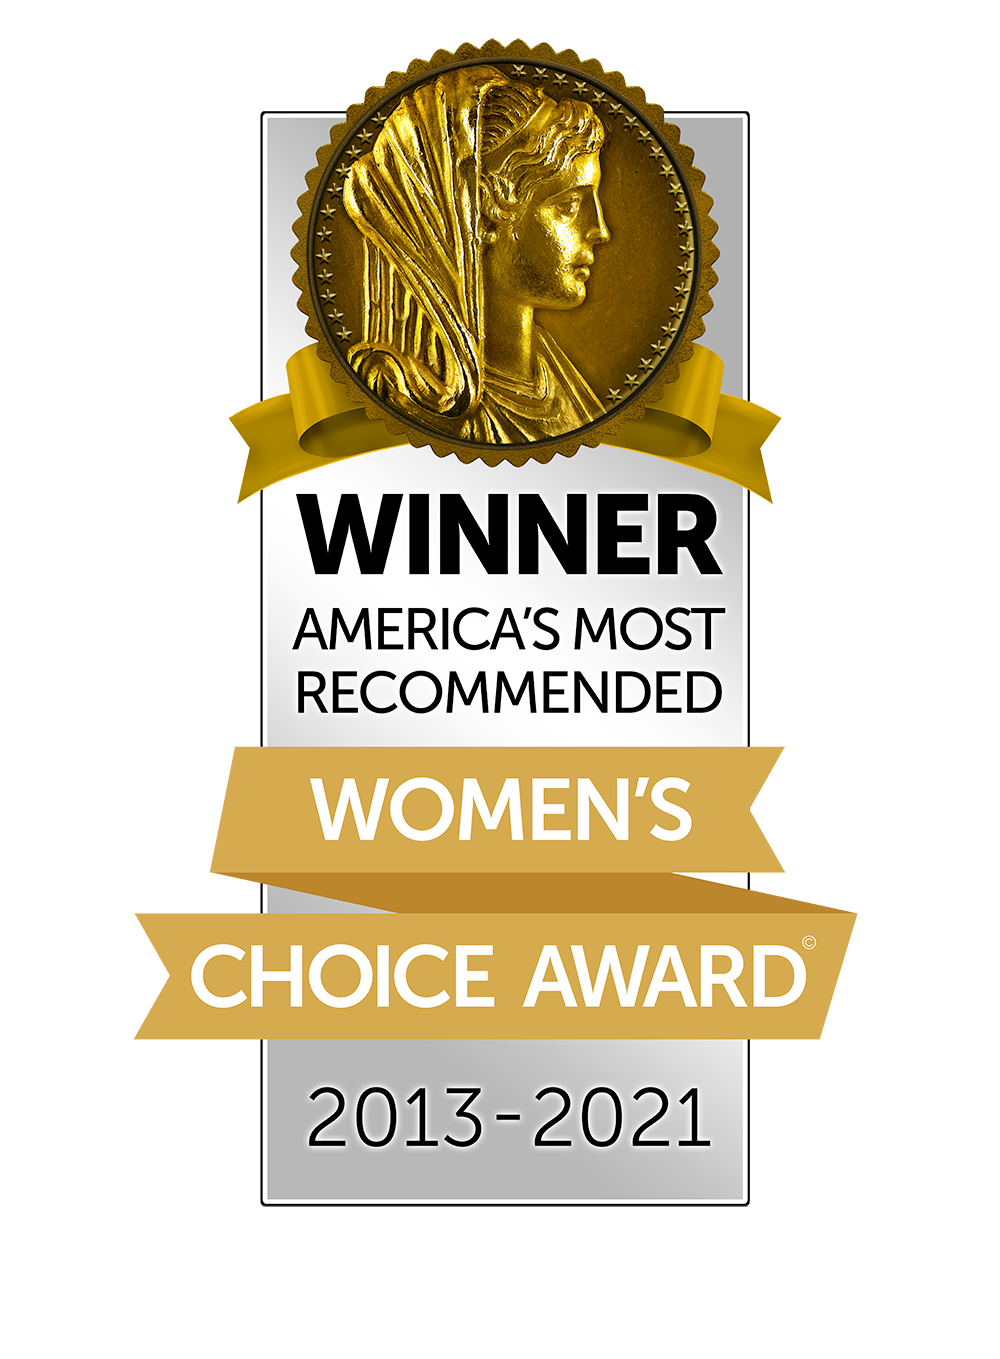 2013-2020 Women's Choice Award: America's Most Recommended